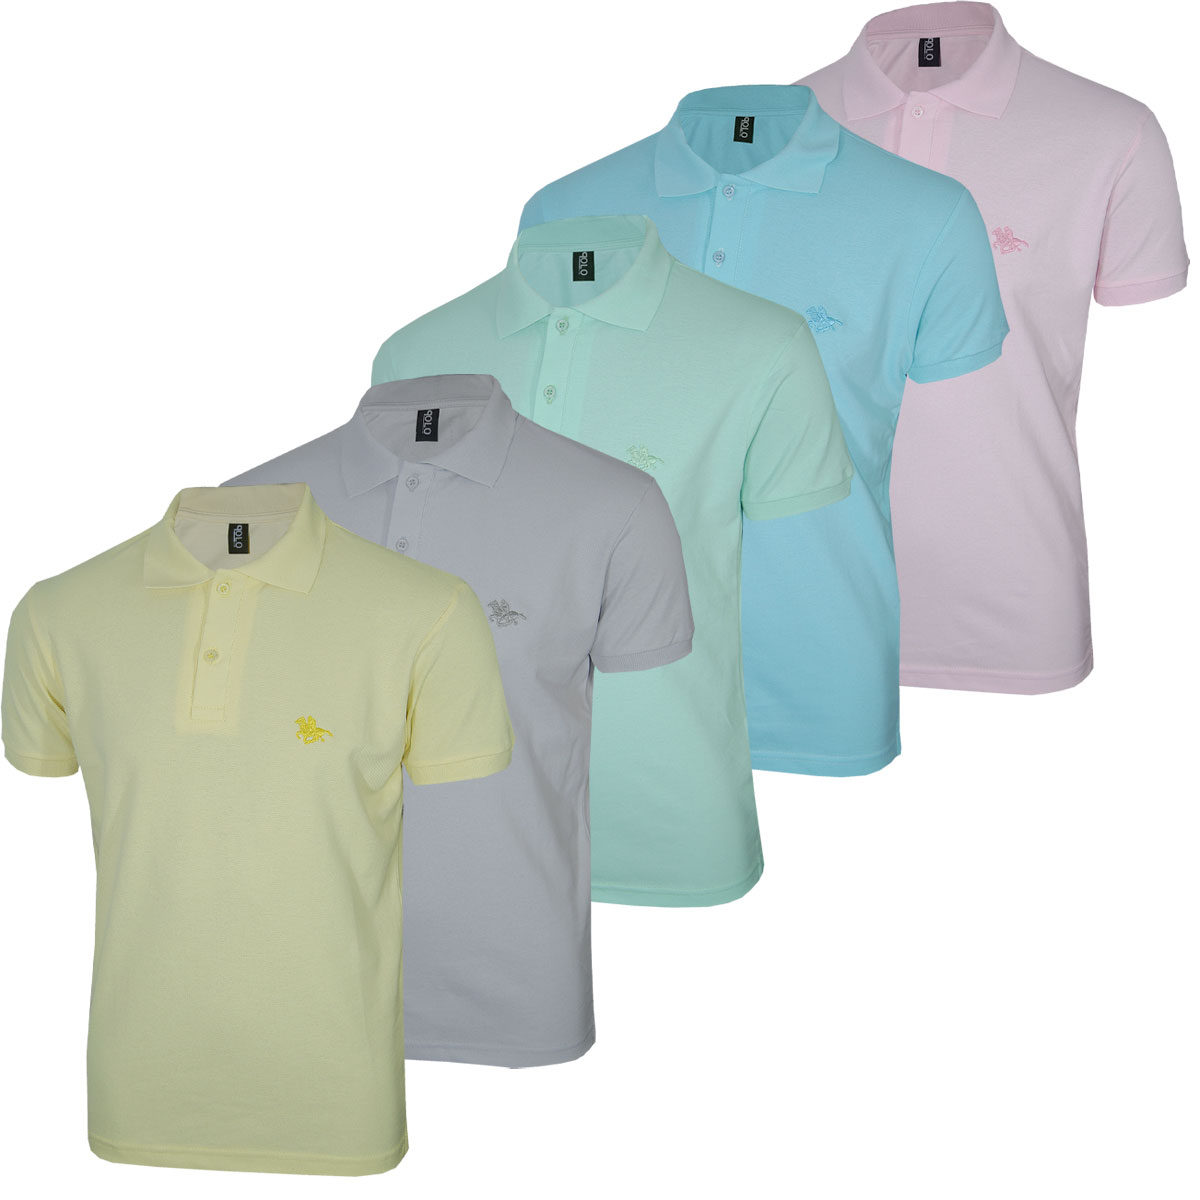 Kit Camisa Polo Masculina  Summer